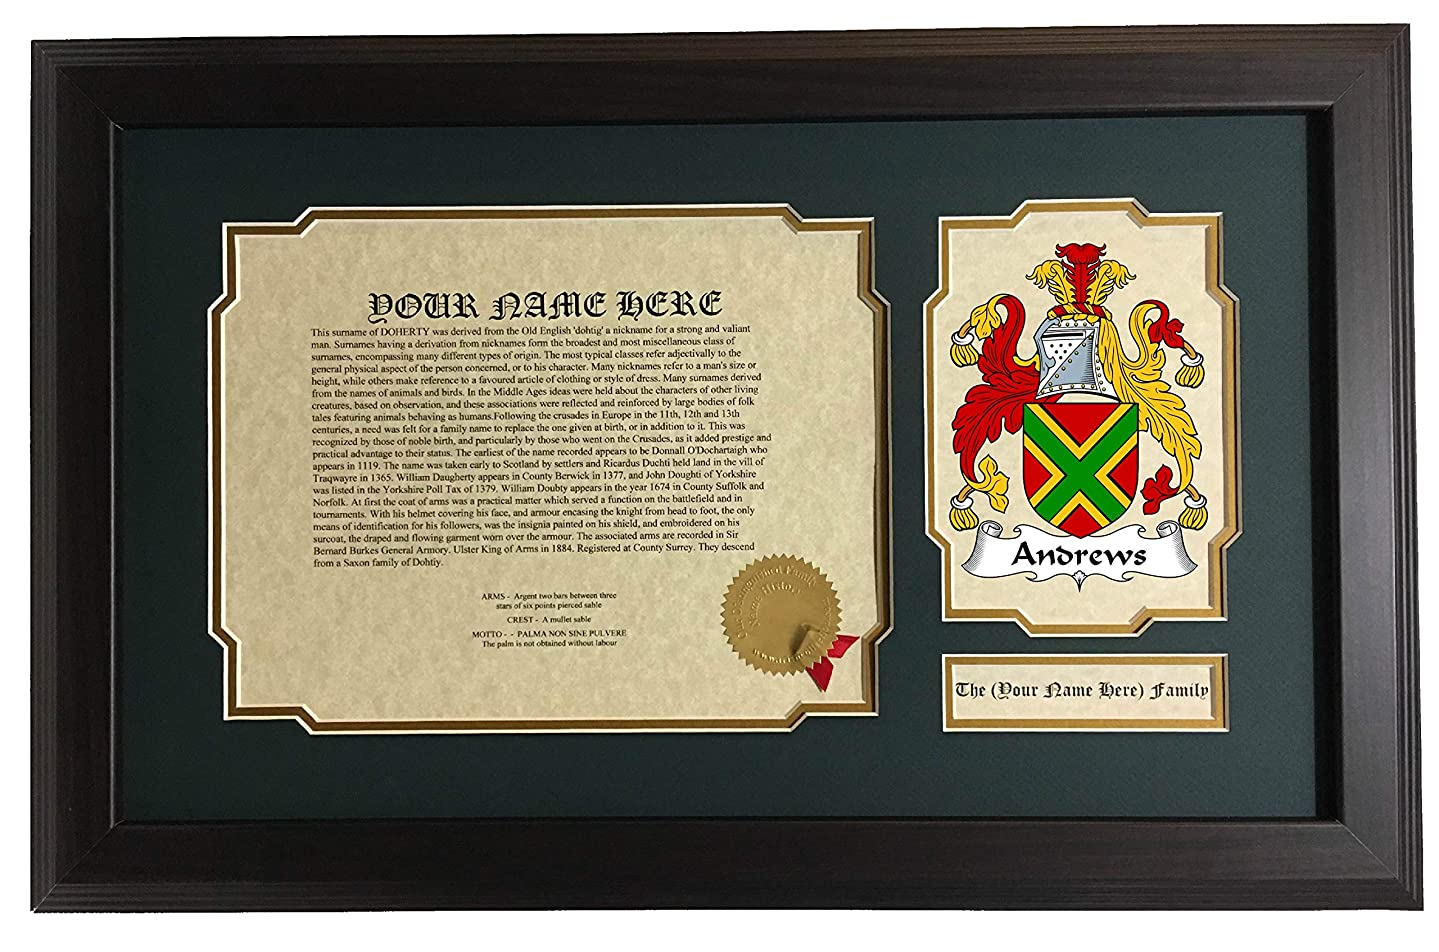 Andrews - Coat of Arms and Last Name History, 14x22 Inches Matted and Framed